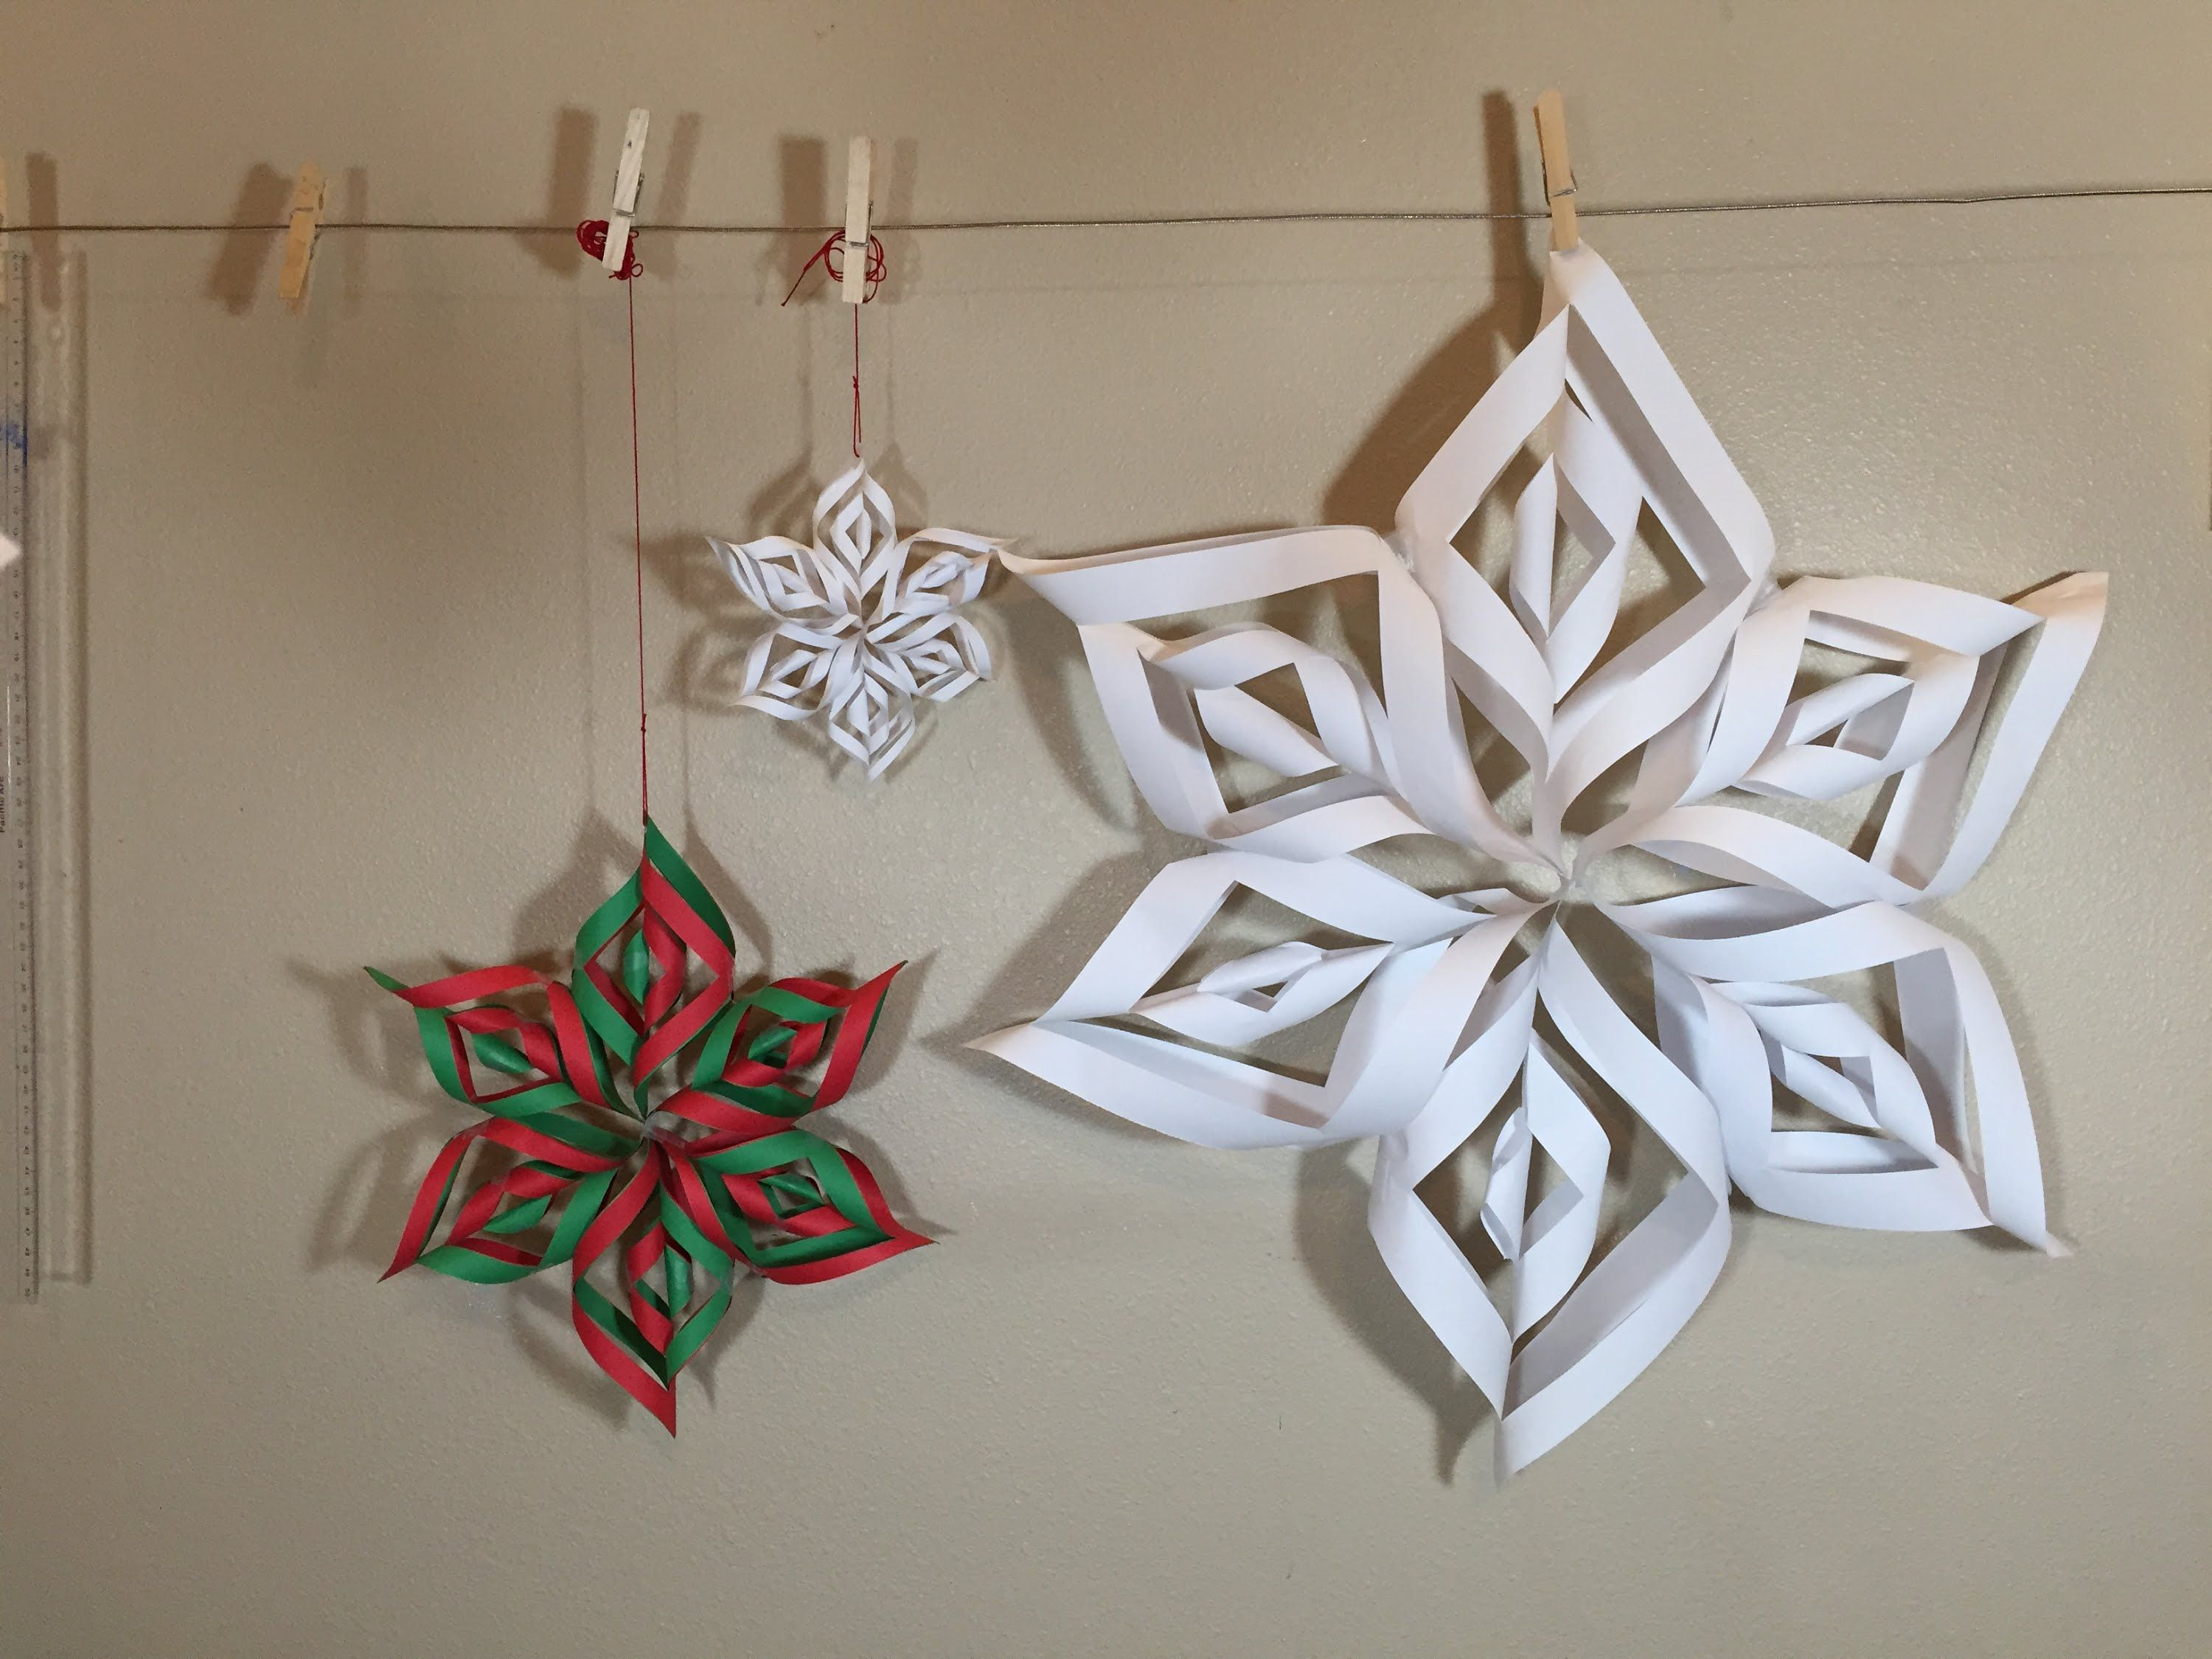 How to make 3D paper snowflakes ❄ Snowflakes with paper ❄ DIY Christmas Decor